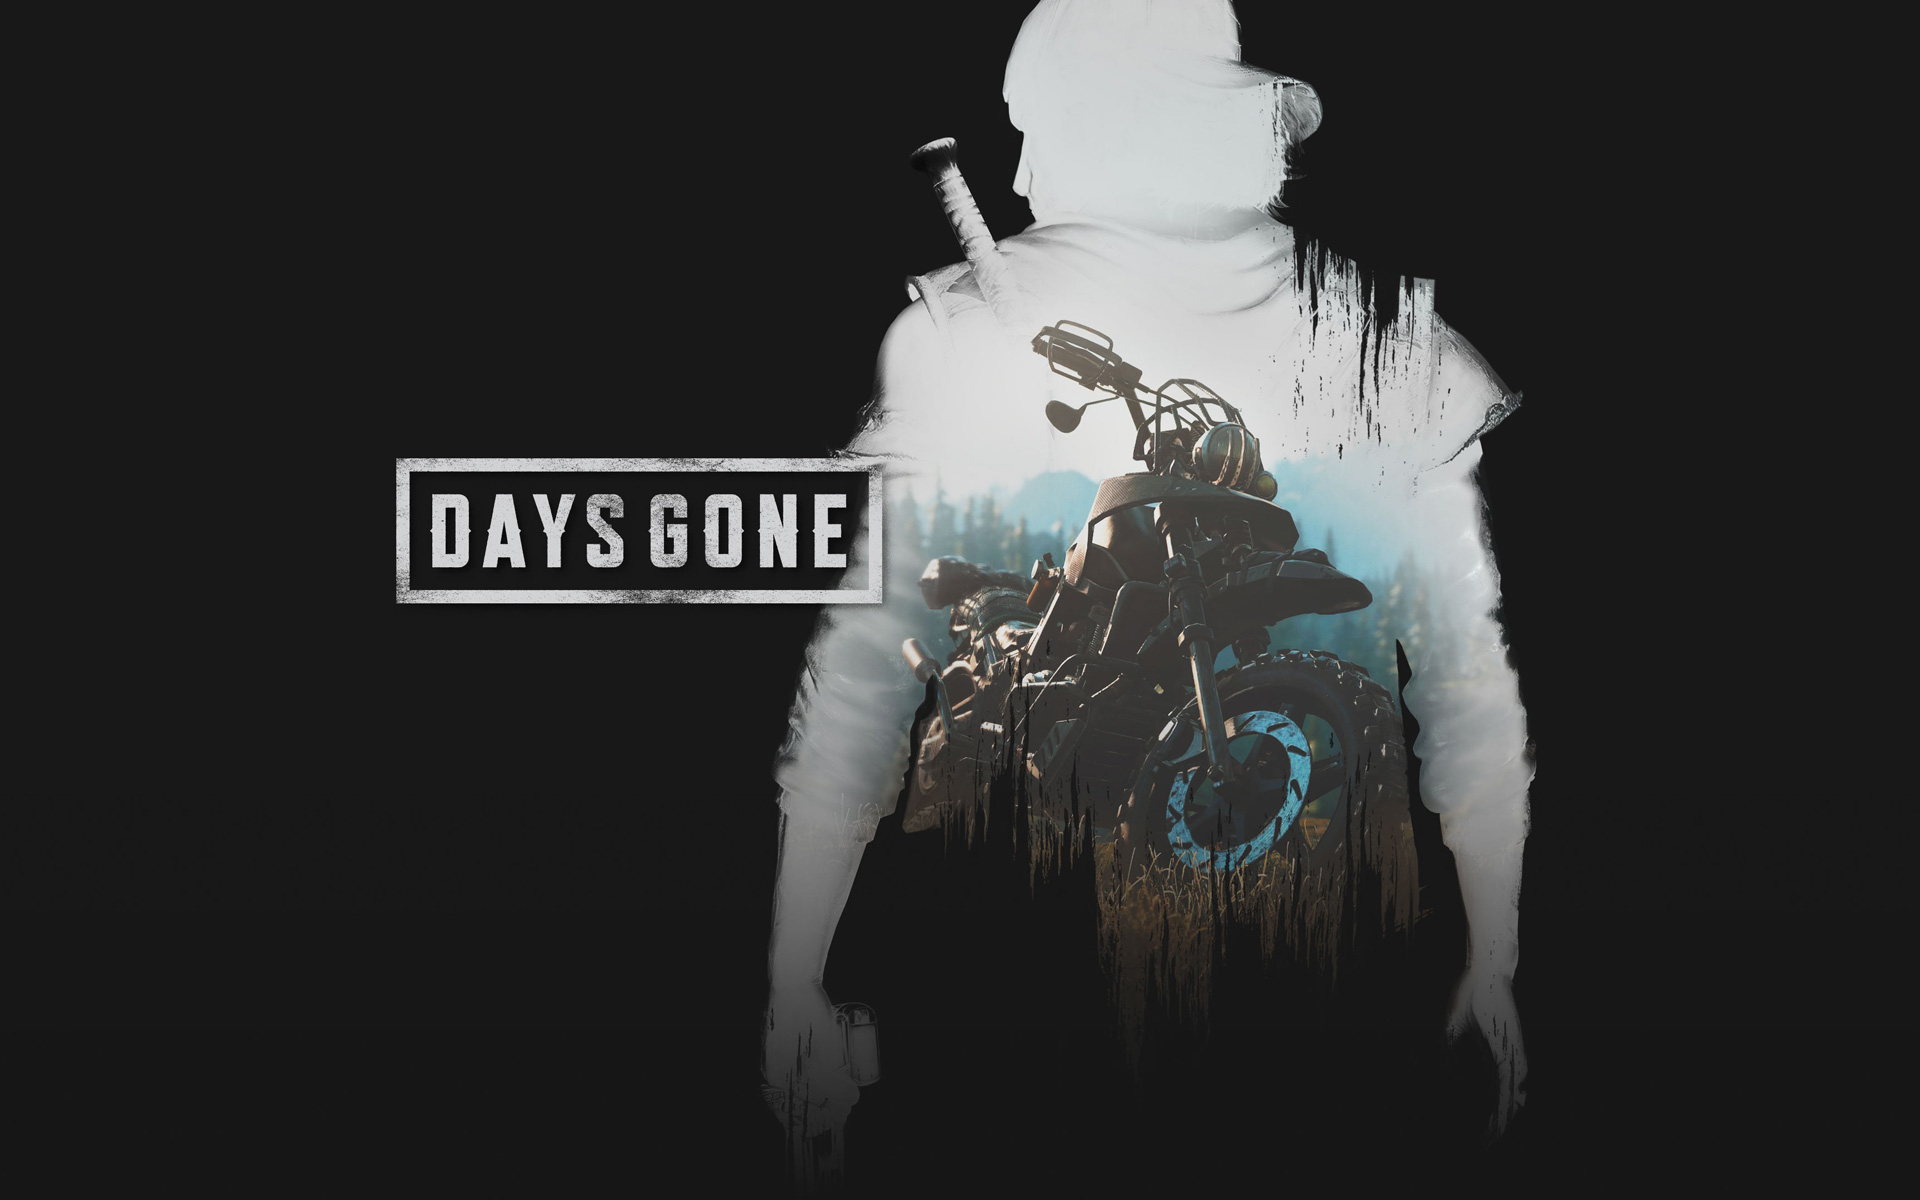 Free Days Gone Wallpaper in 1920x1200